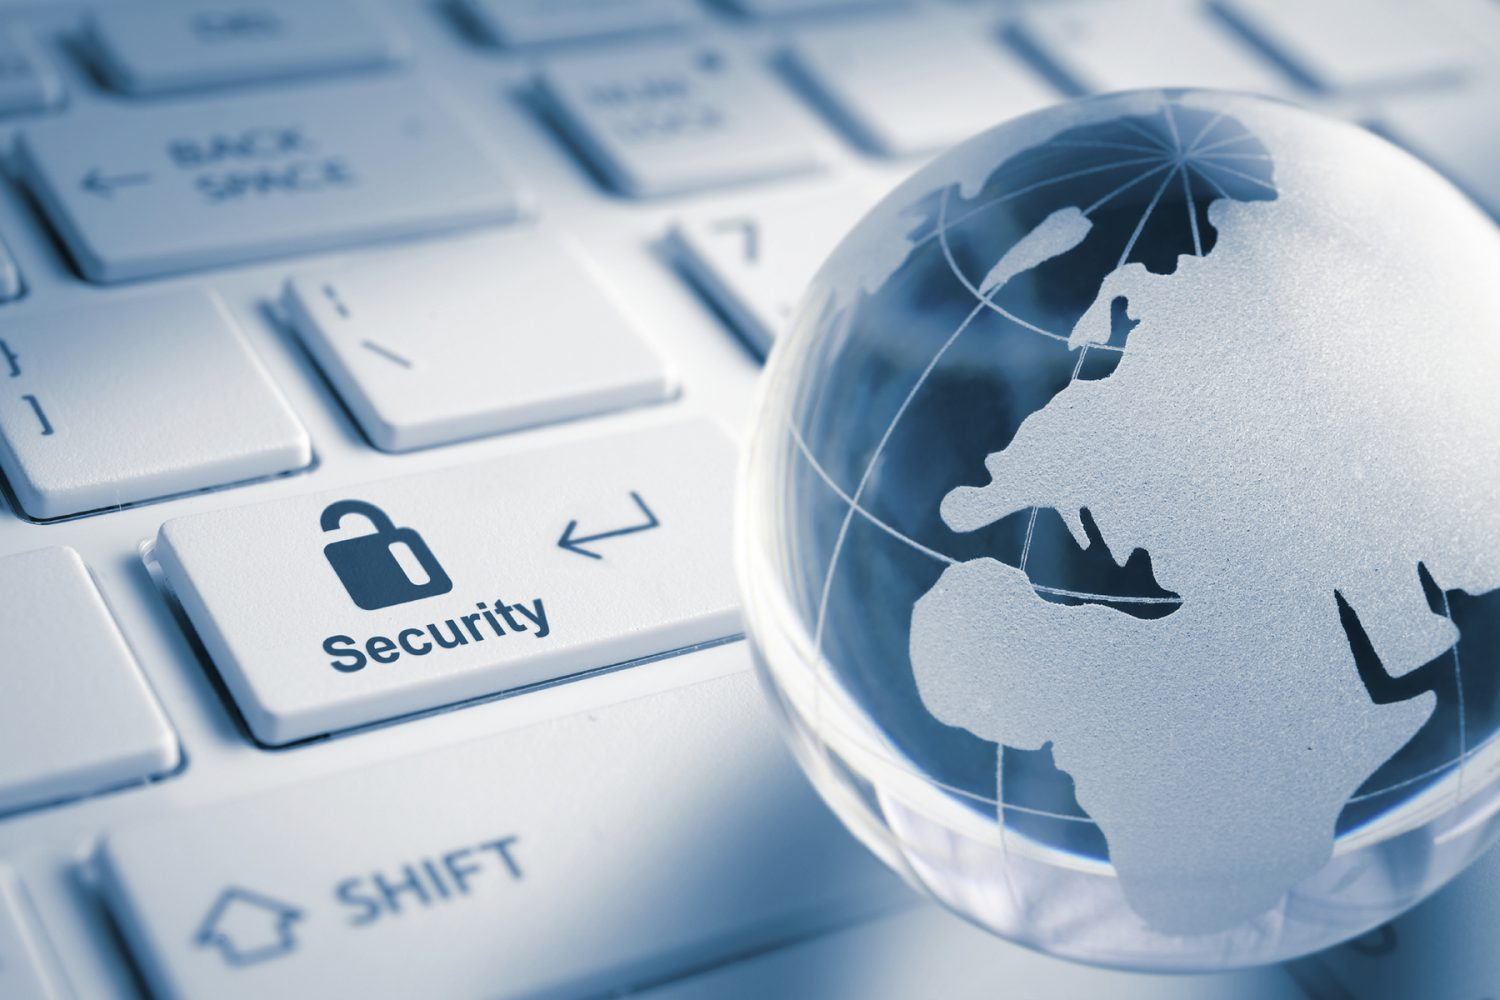 Cyber security - Sicurezza informatica (2) Imc